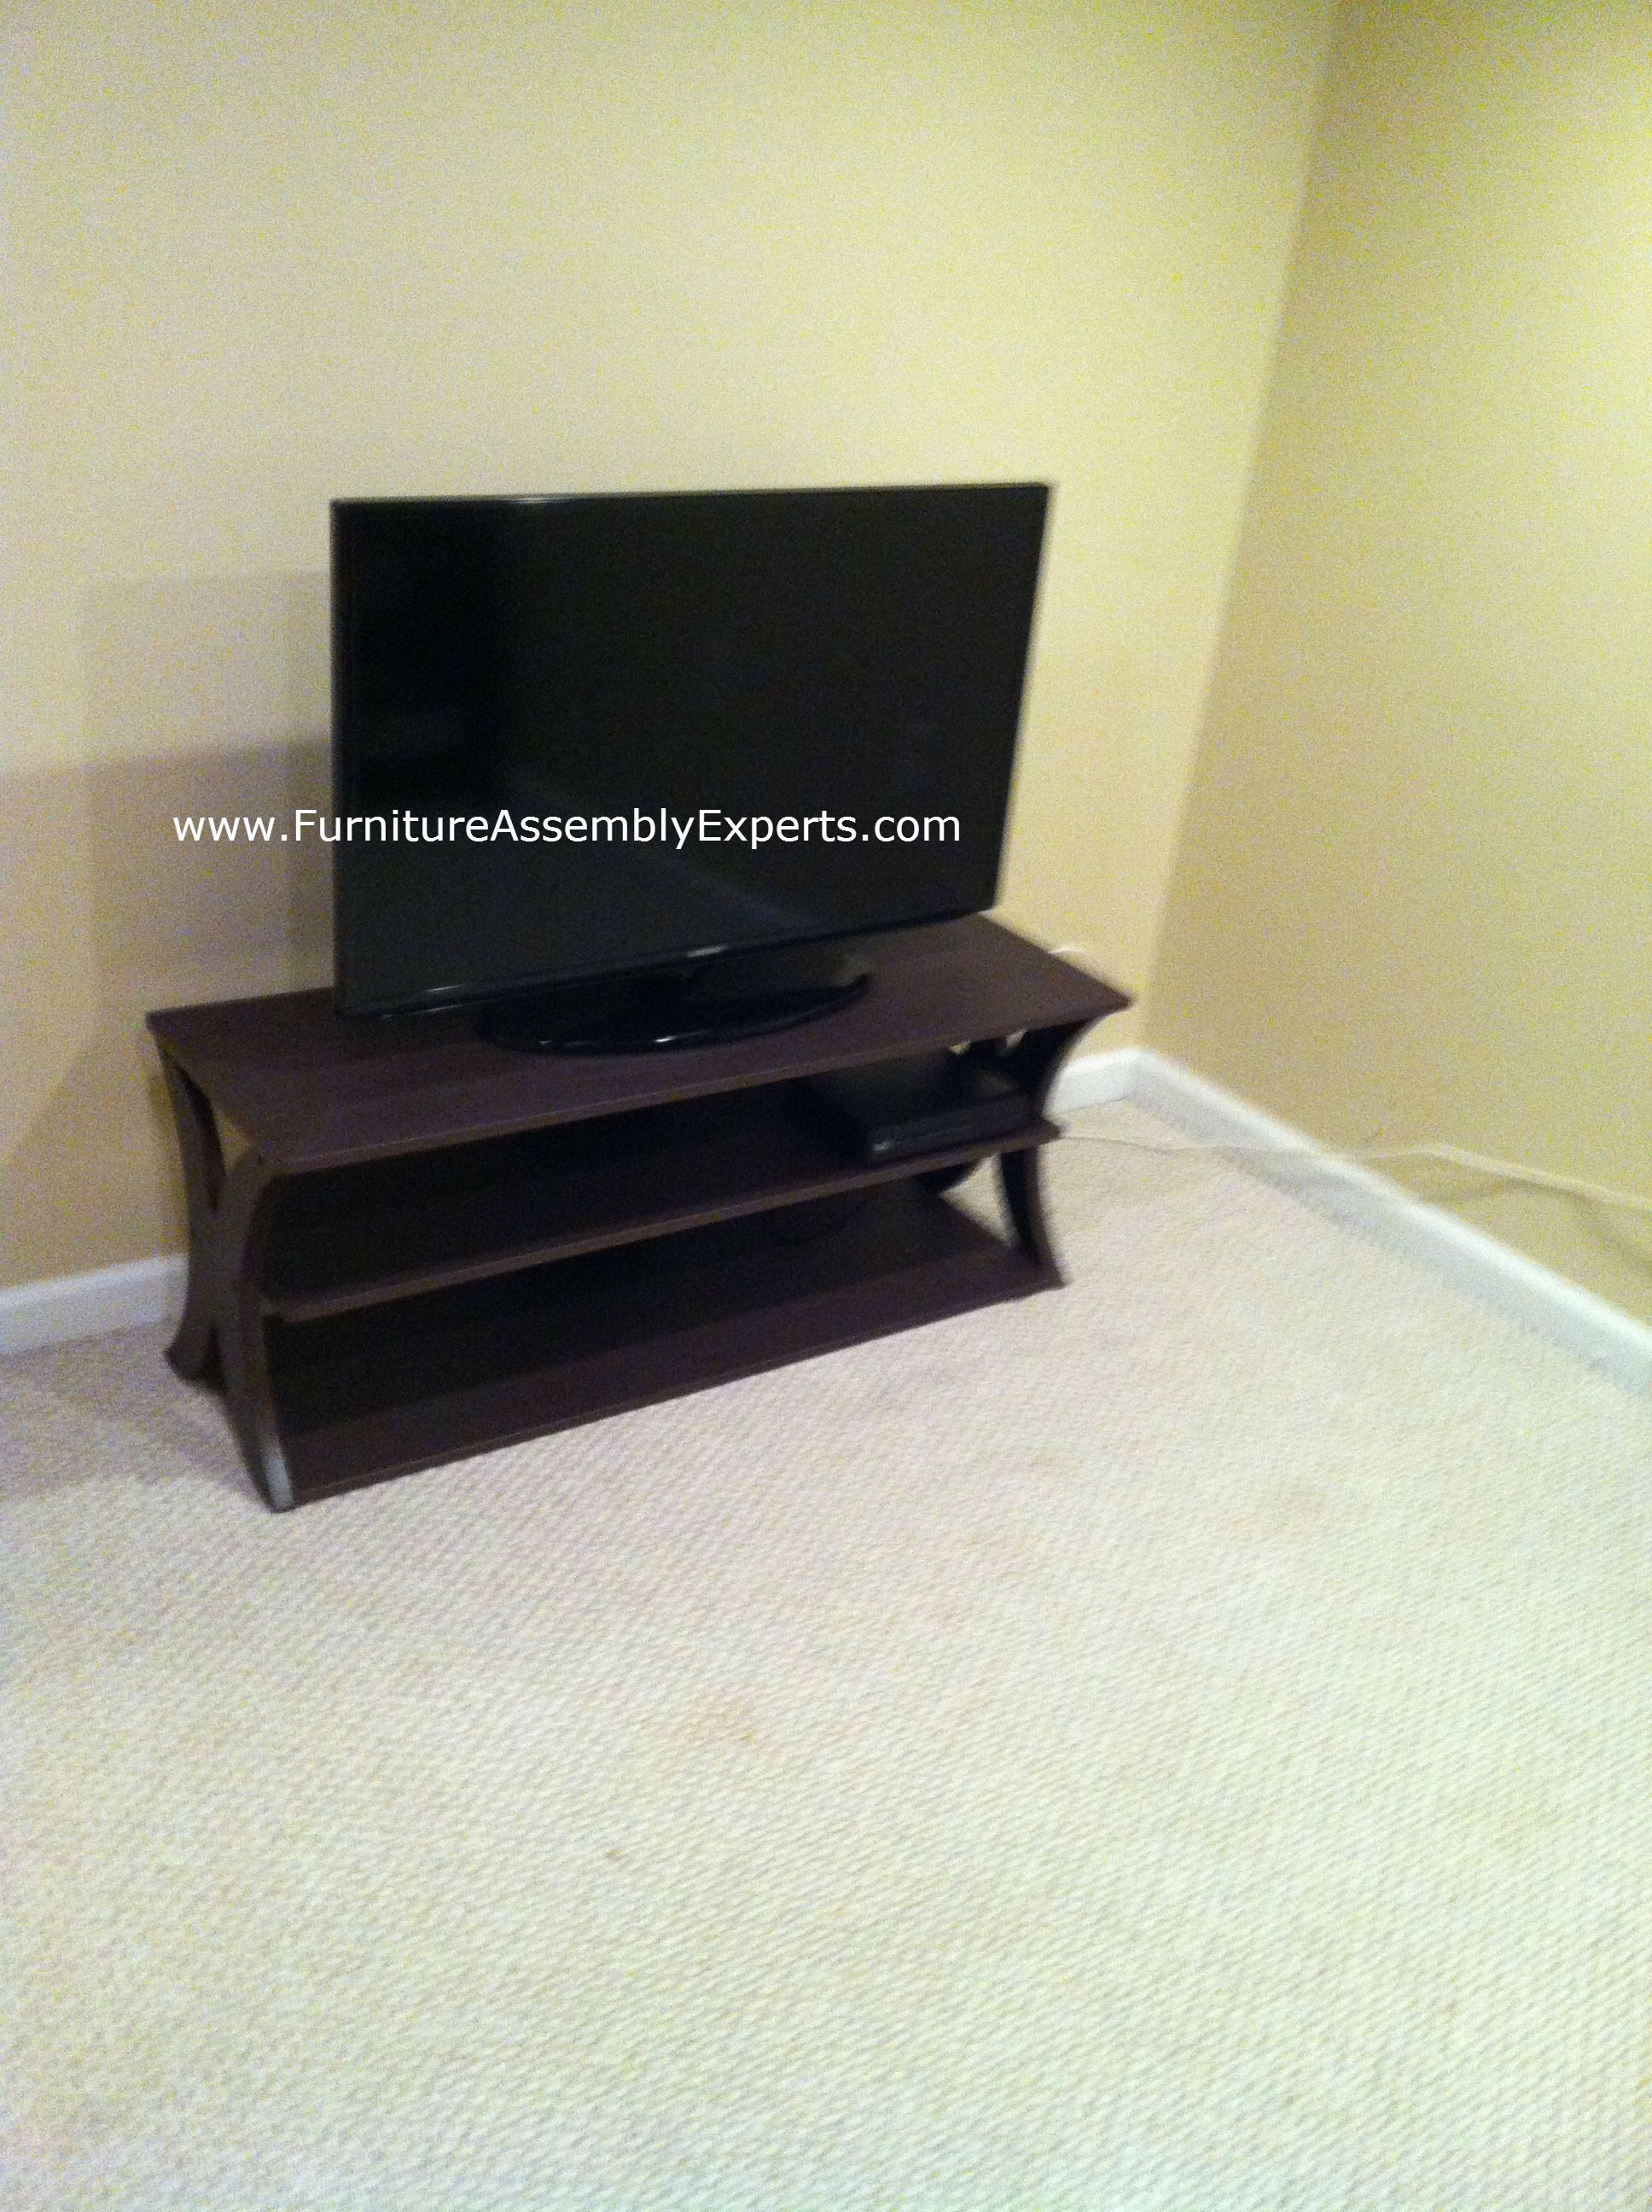 Crate Barrel Tv Stand Assembled In Washington Dc By Furniture